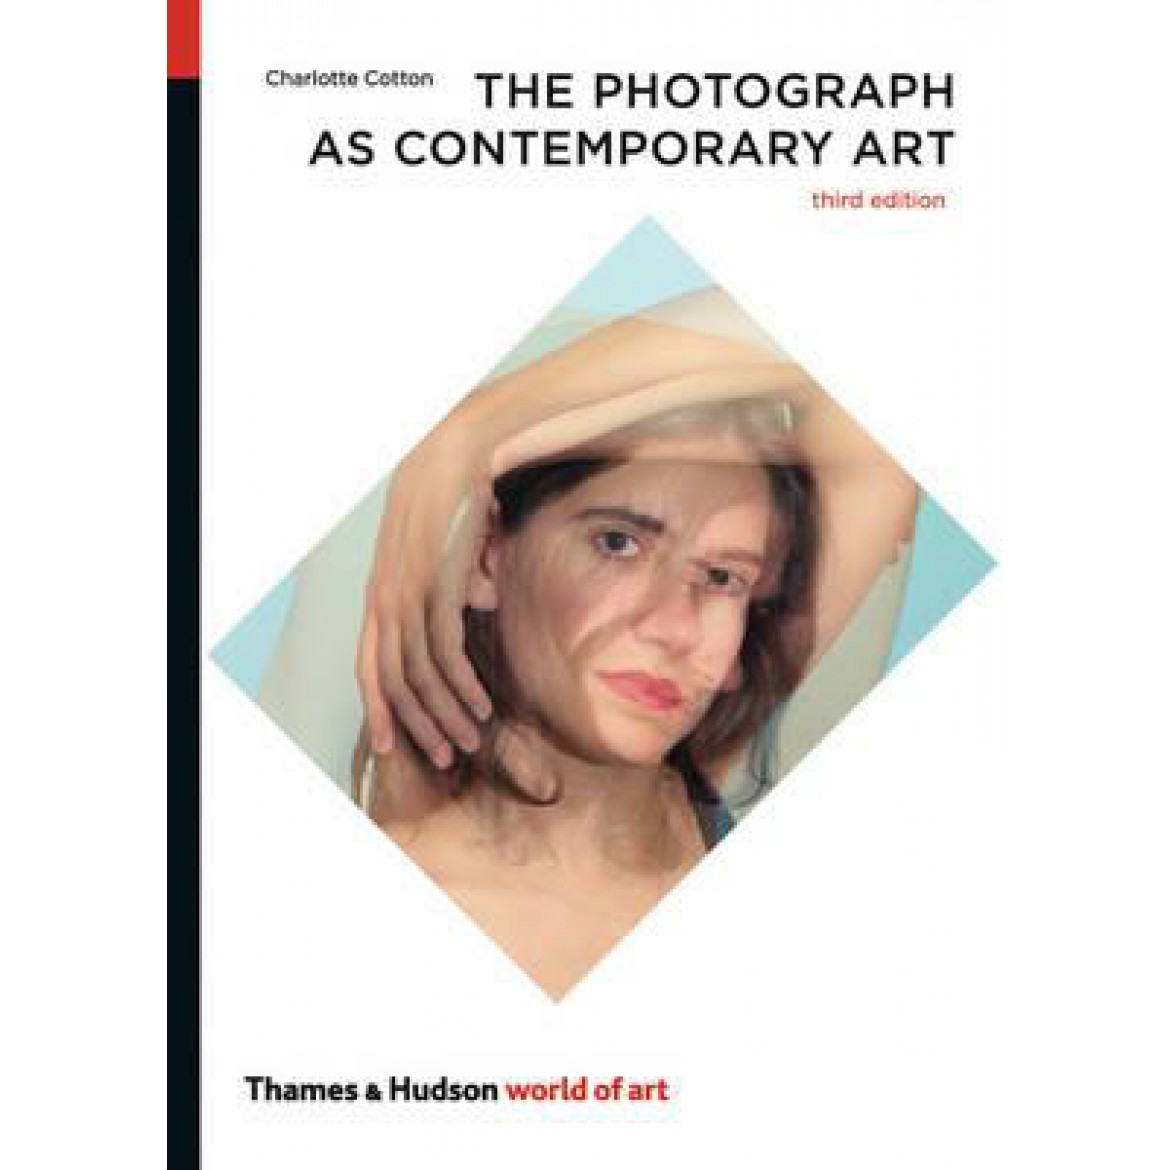 The Photograph as Contemporary Art - Charlotte Cotton